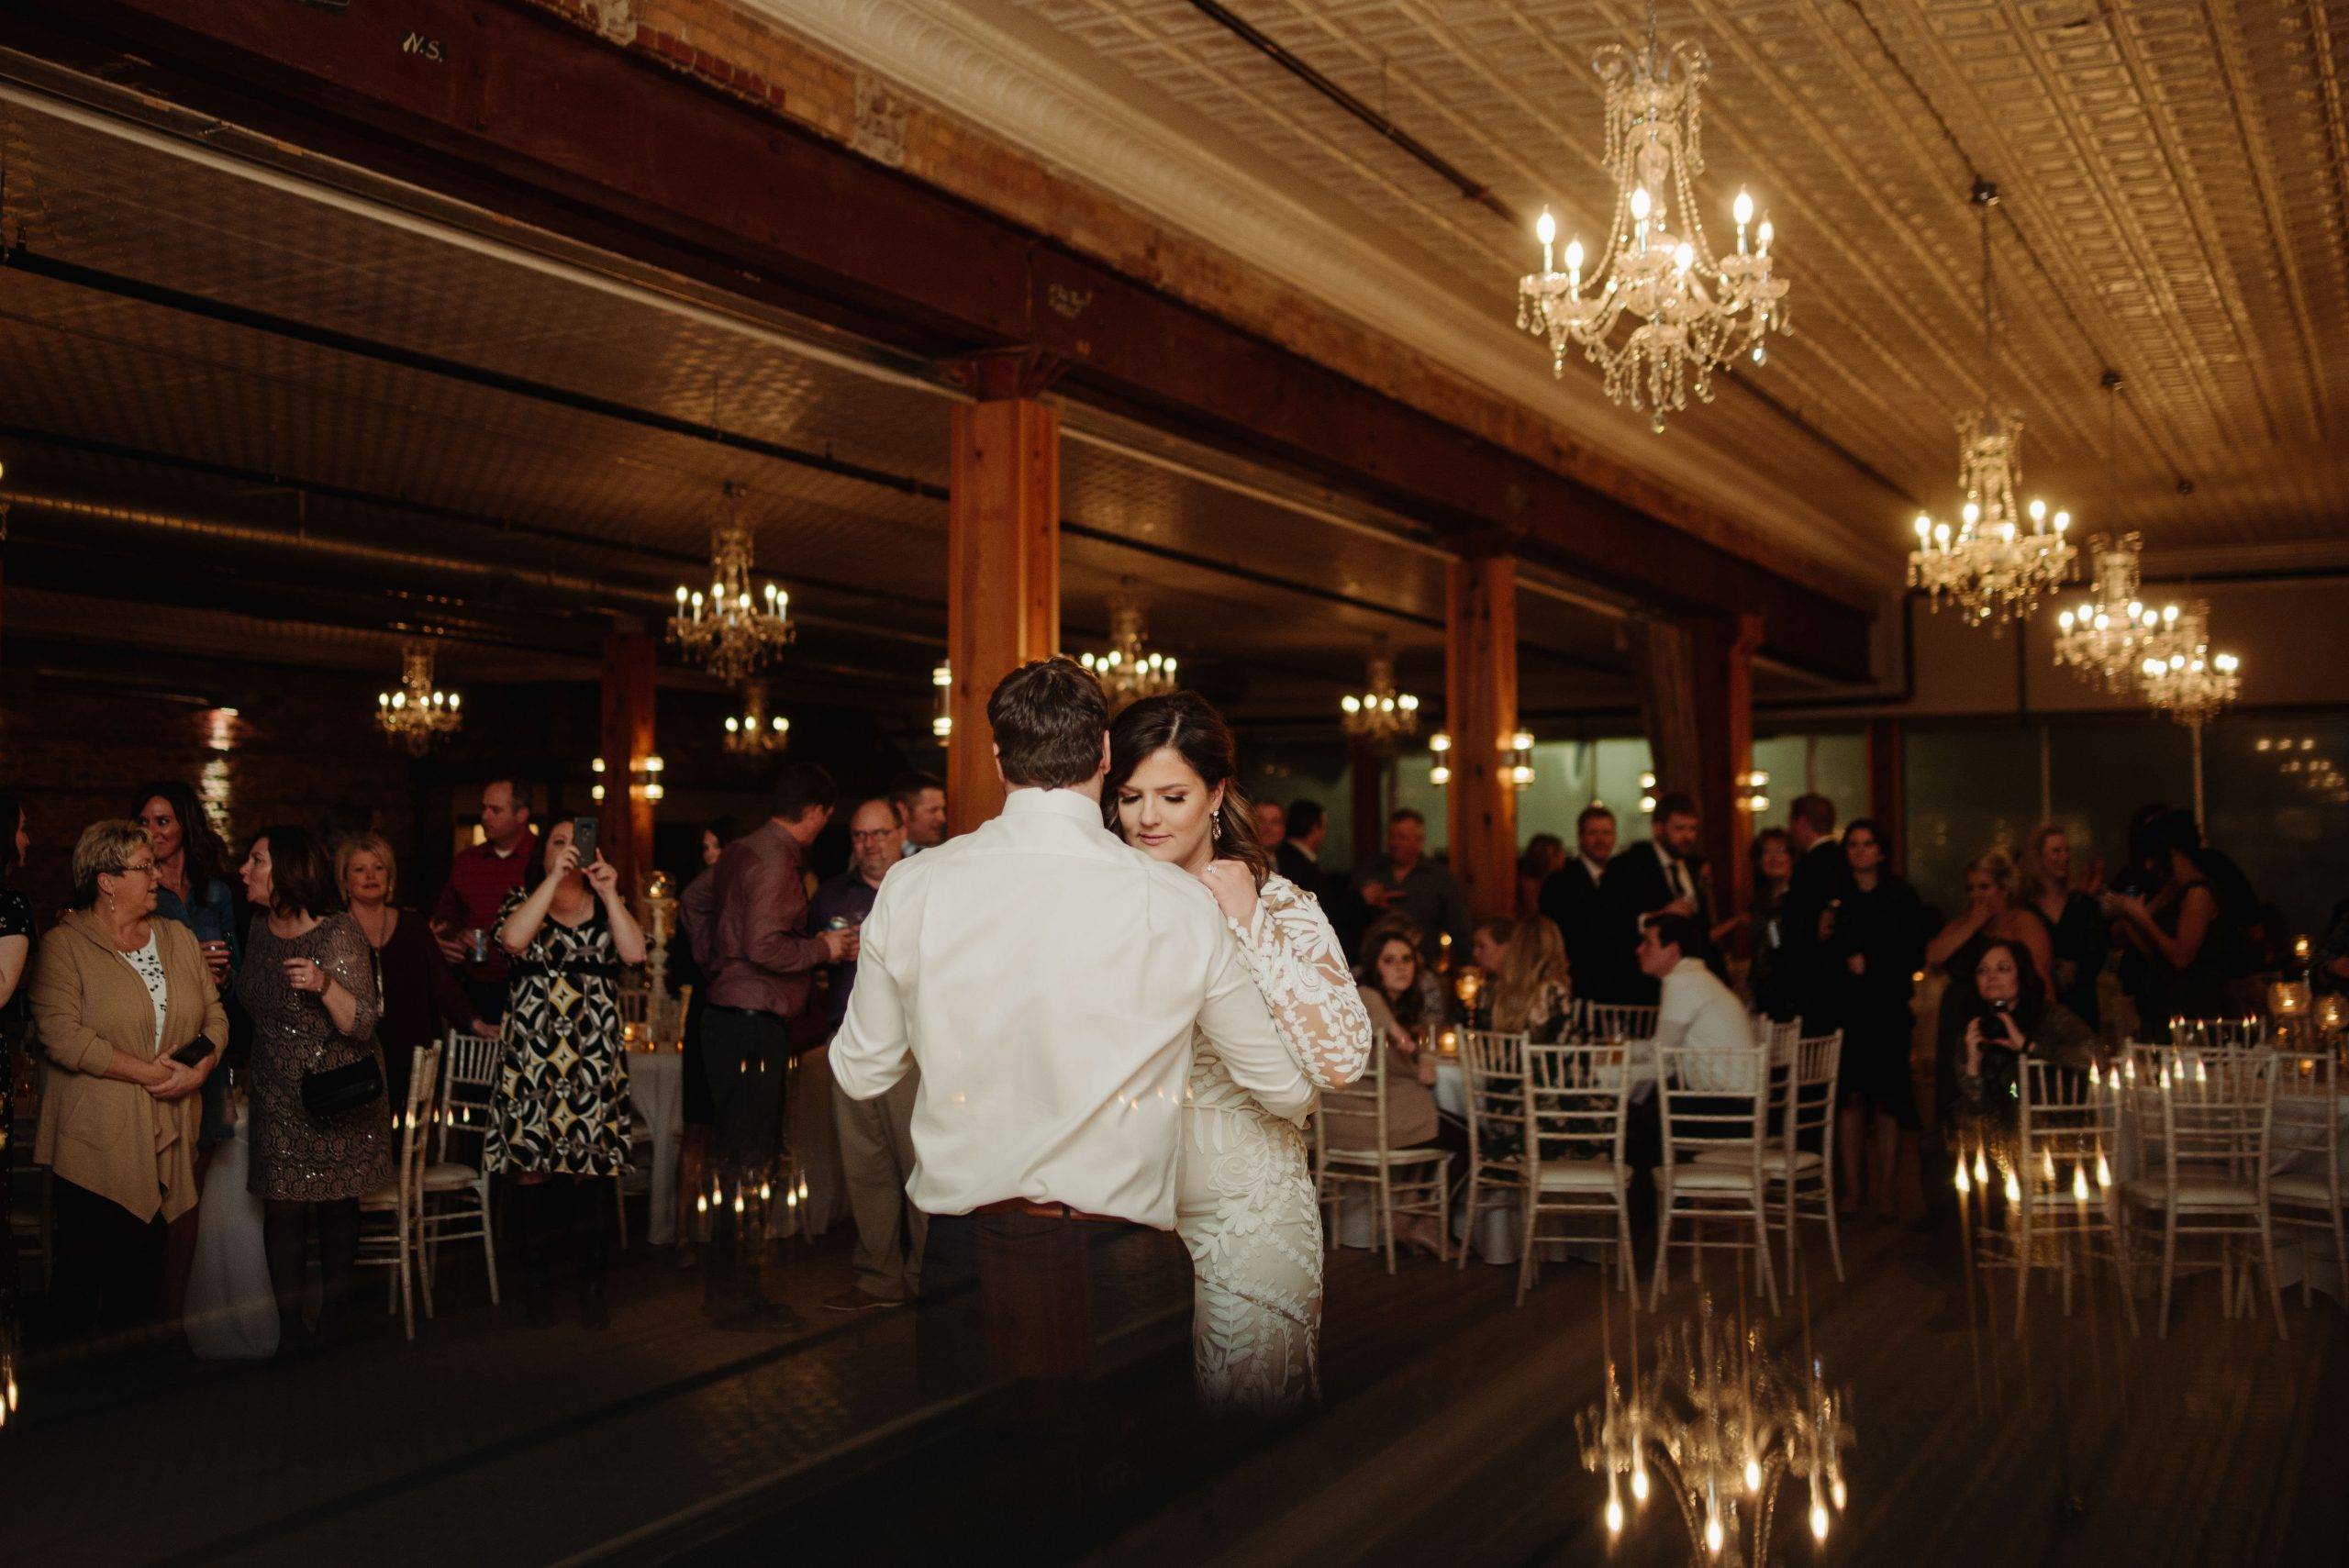 bride and groom dancing 3 ten event venue fairbault minnesota